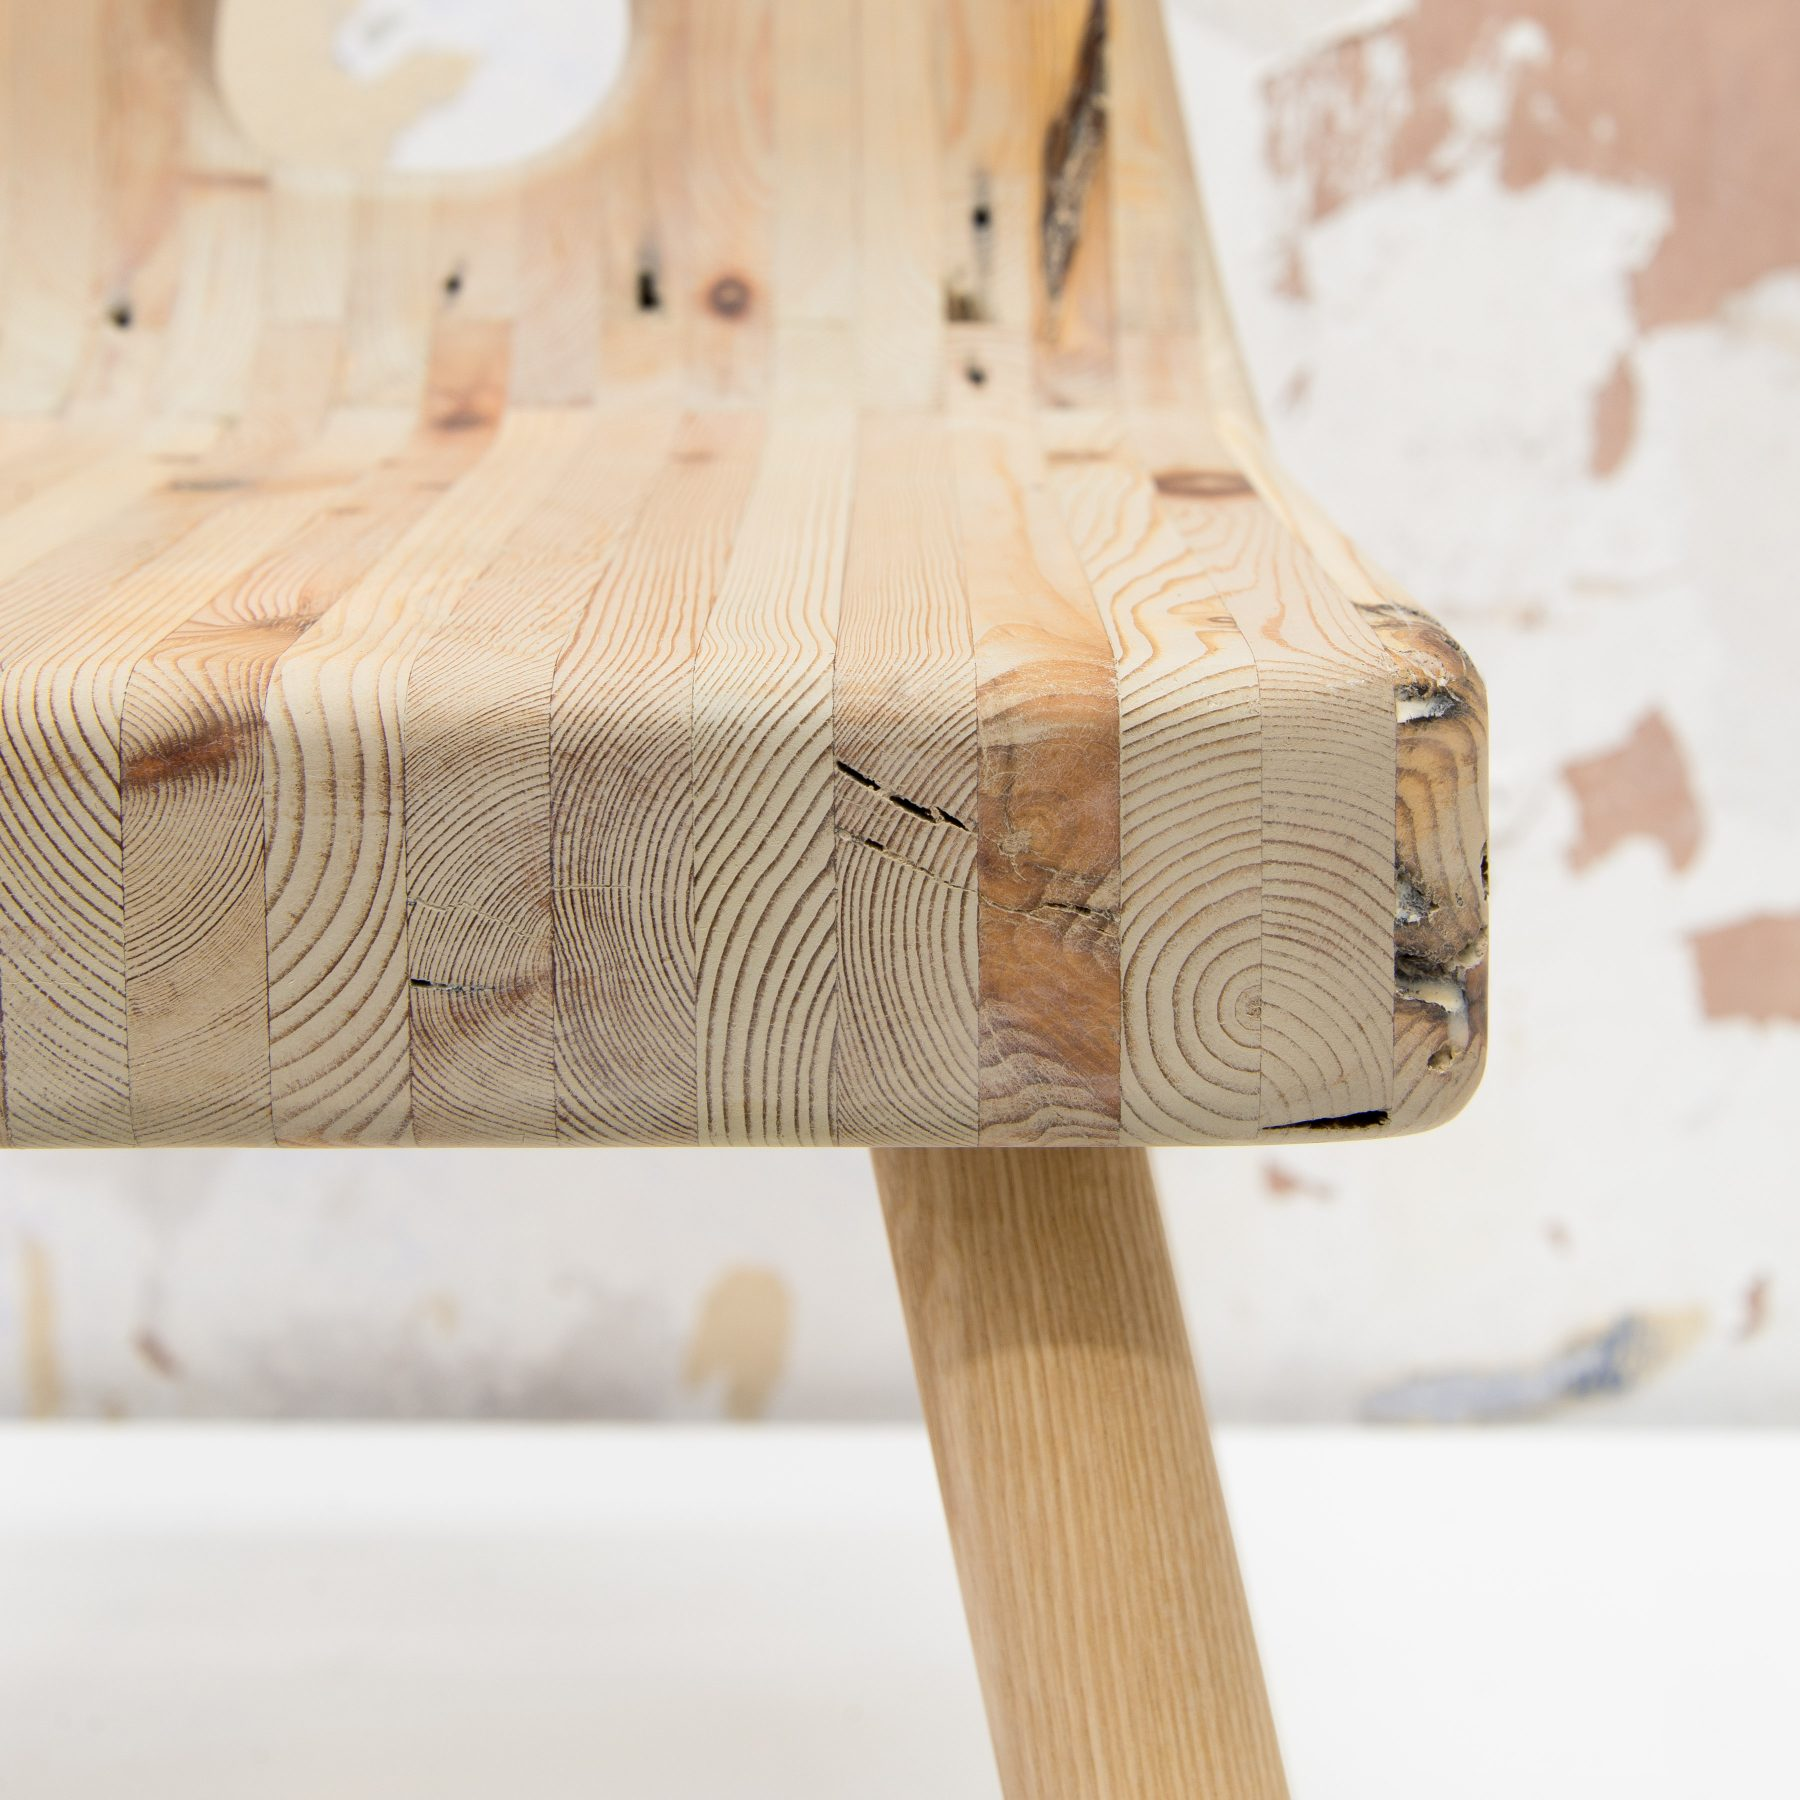 Jan Hendzel Studio good day chair-7